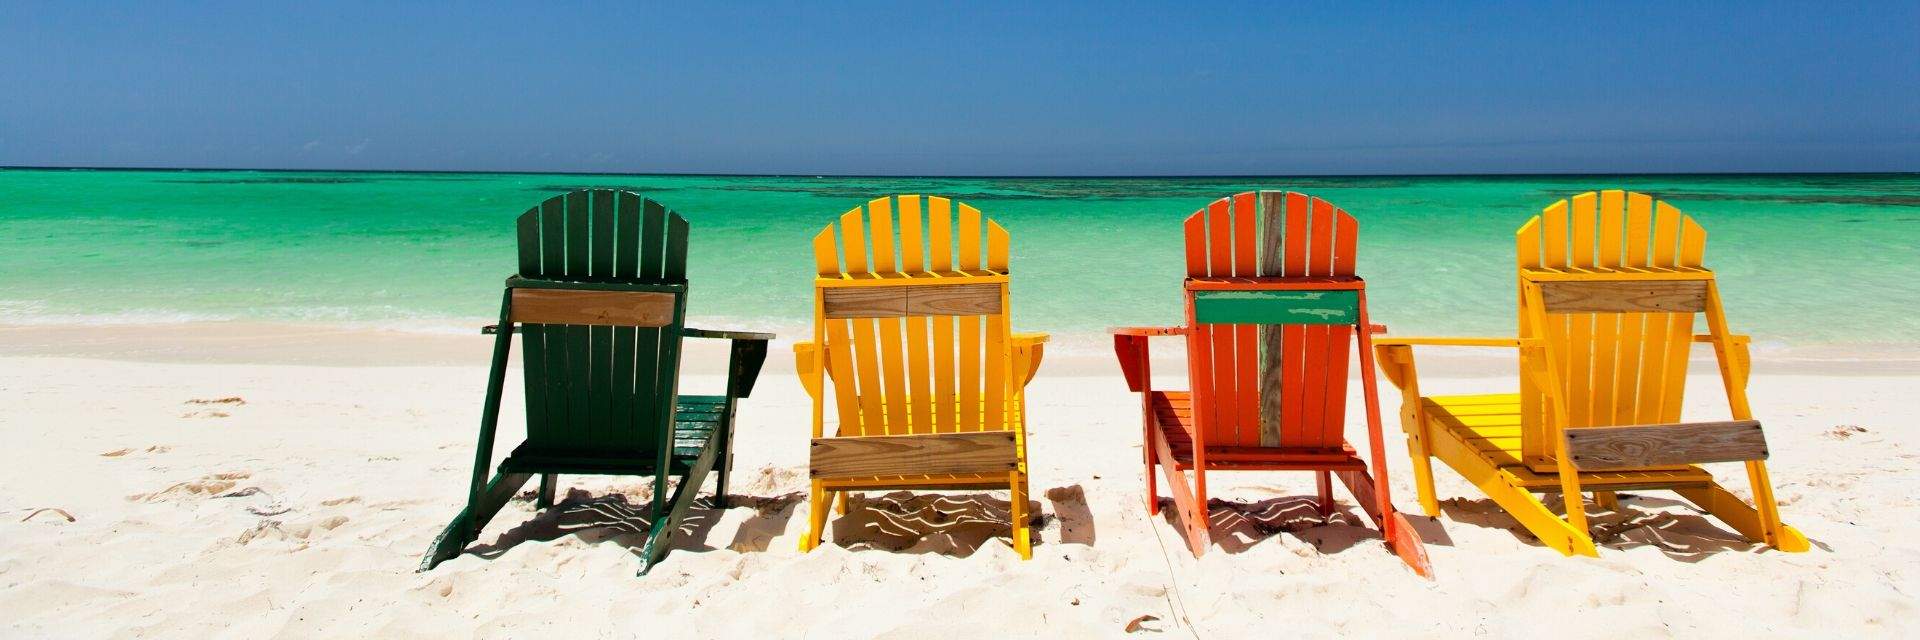 home tampa bay beaches chamber of commerce tampa bay beaches chamber of commerce